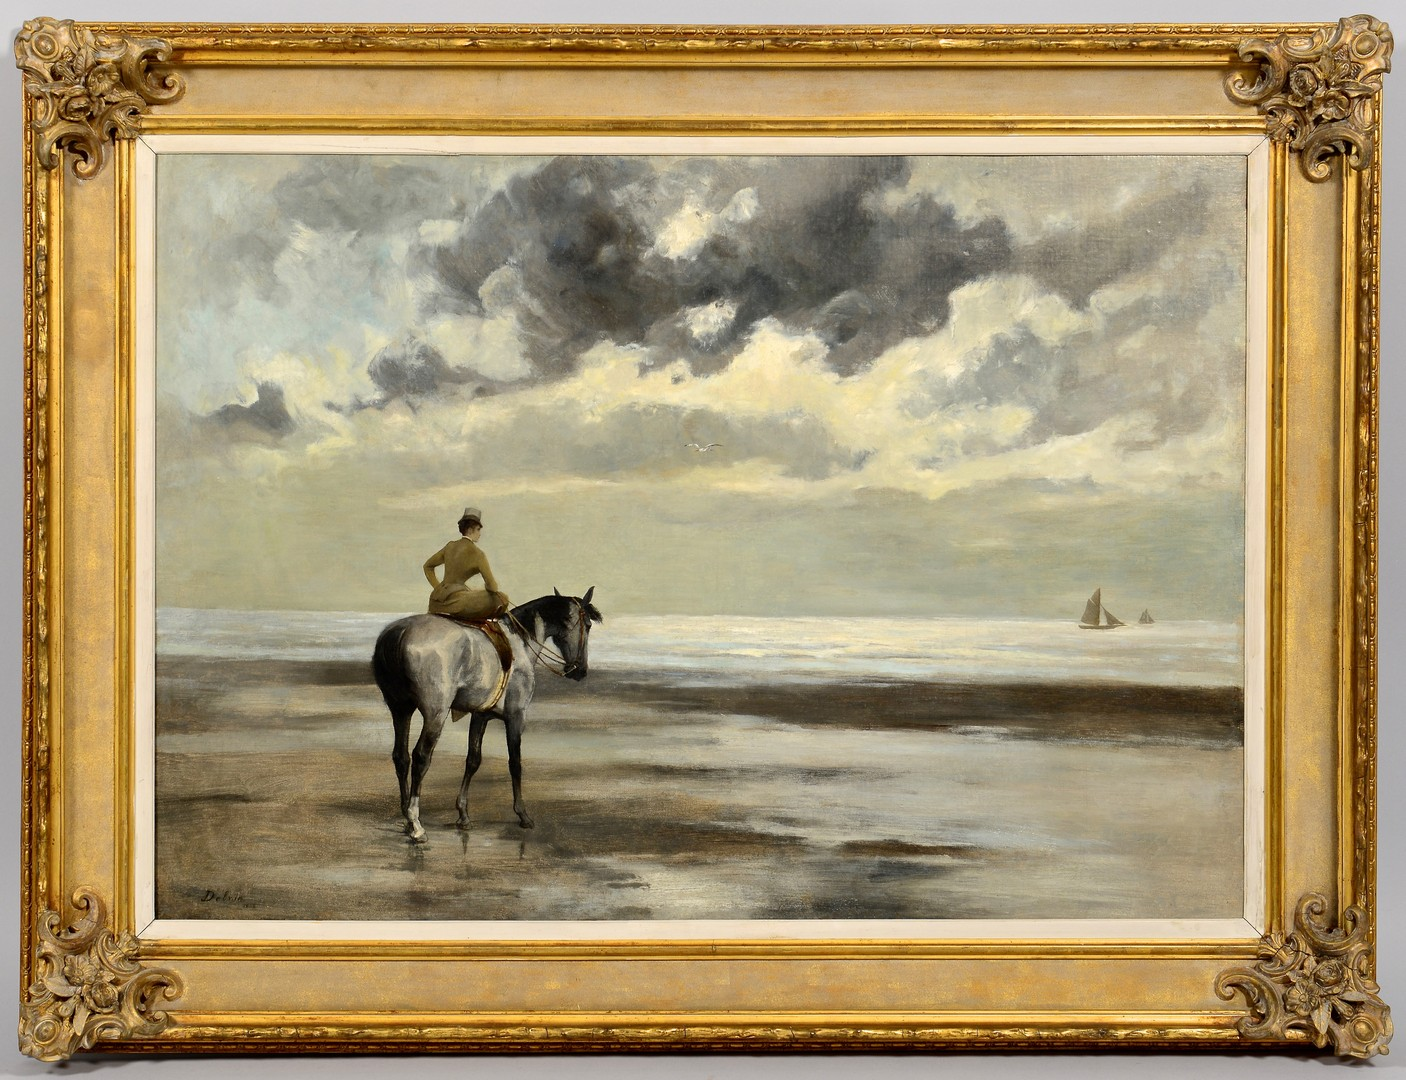 Lot 216: Jean Joseph Delvin Oil on Canvas Seascape